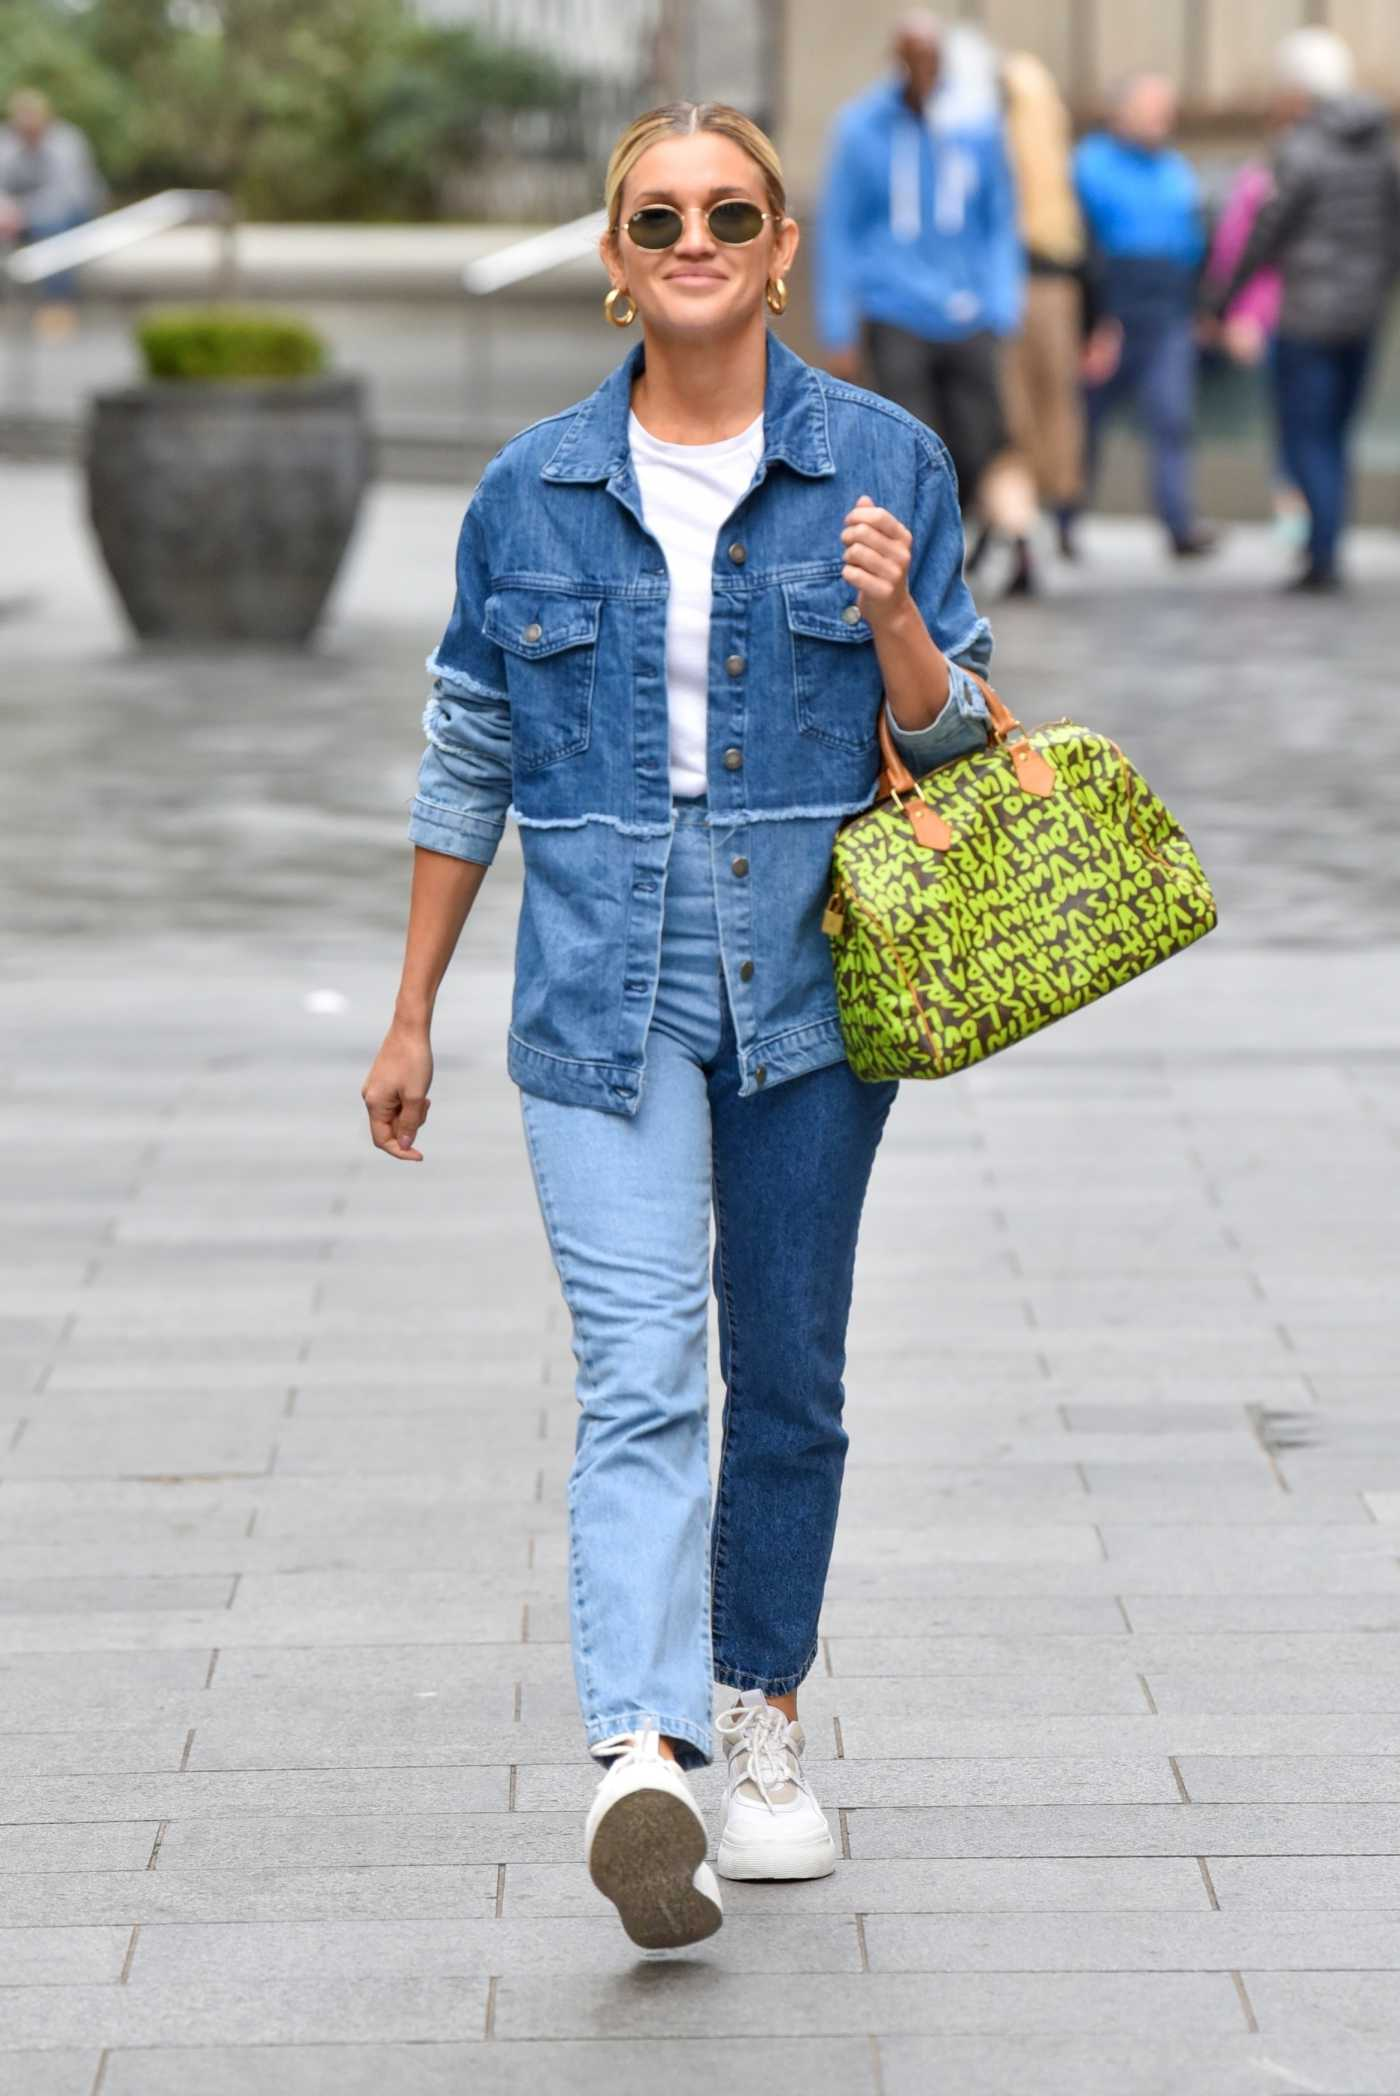 Ashley Roberts in a Blue Denim Suit Leaves the Global Studios in London 09/30/2020